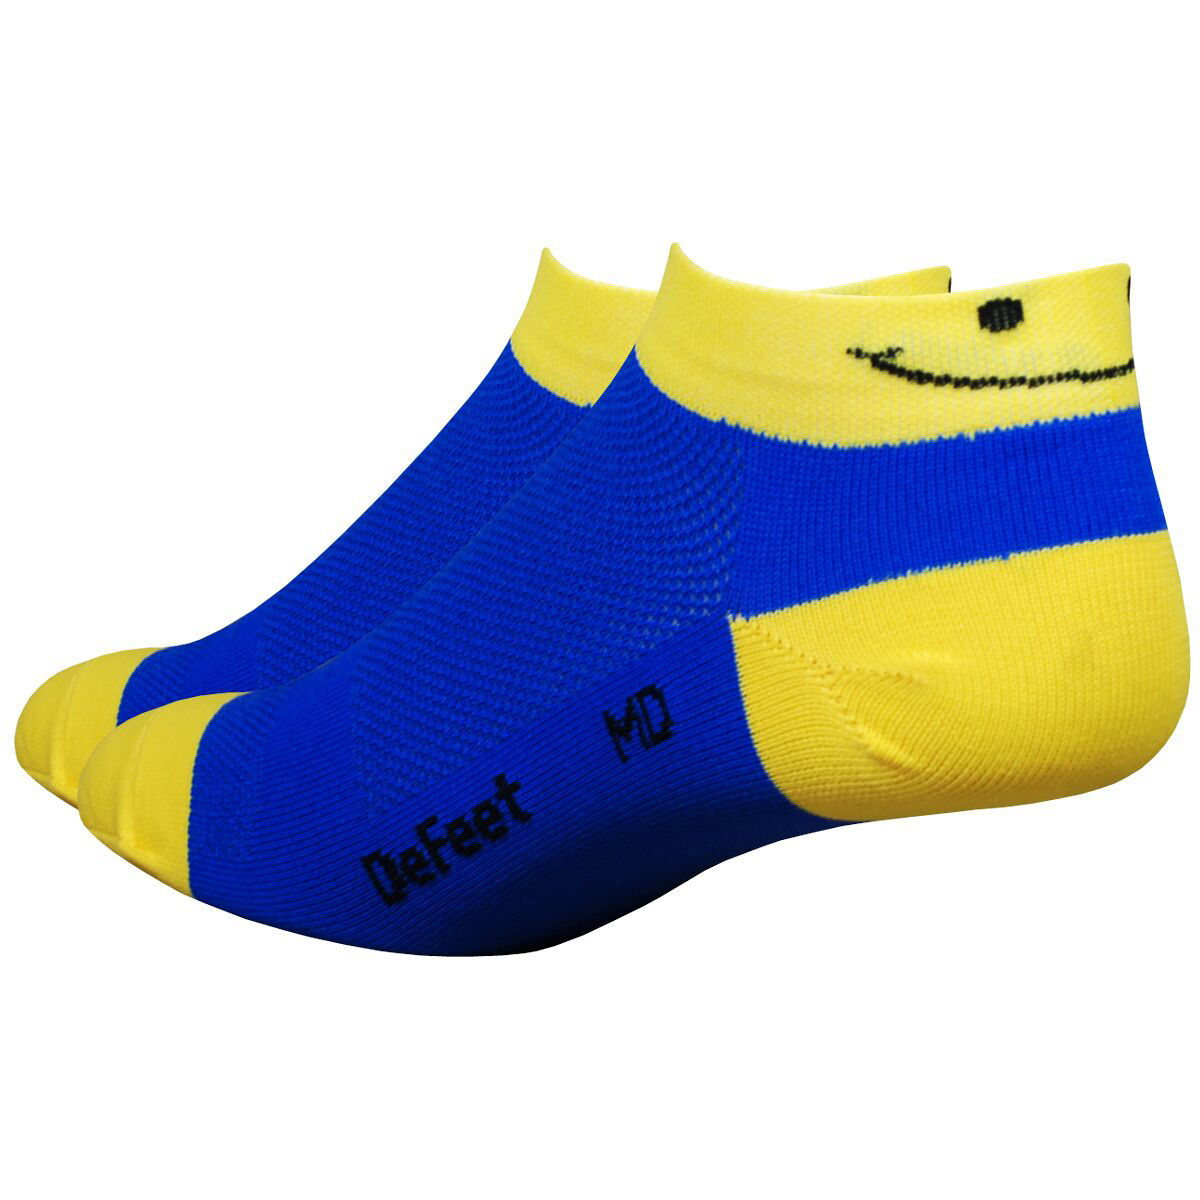 Chaussettes DeFeet Aireator Speede Smiley (2,5 cm environ) - L